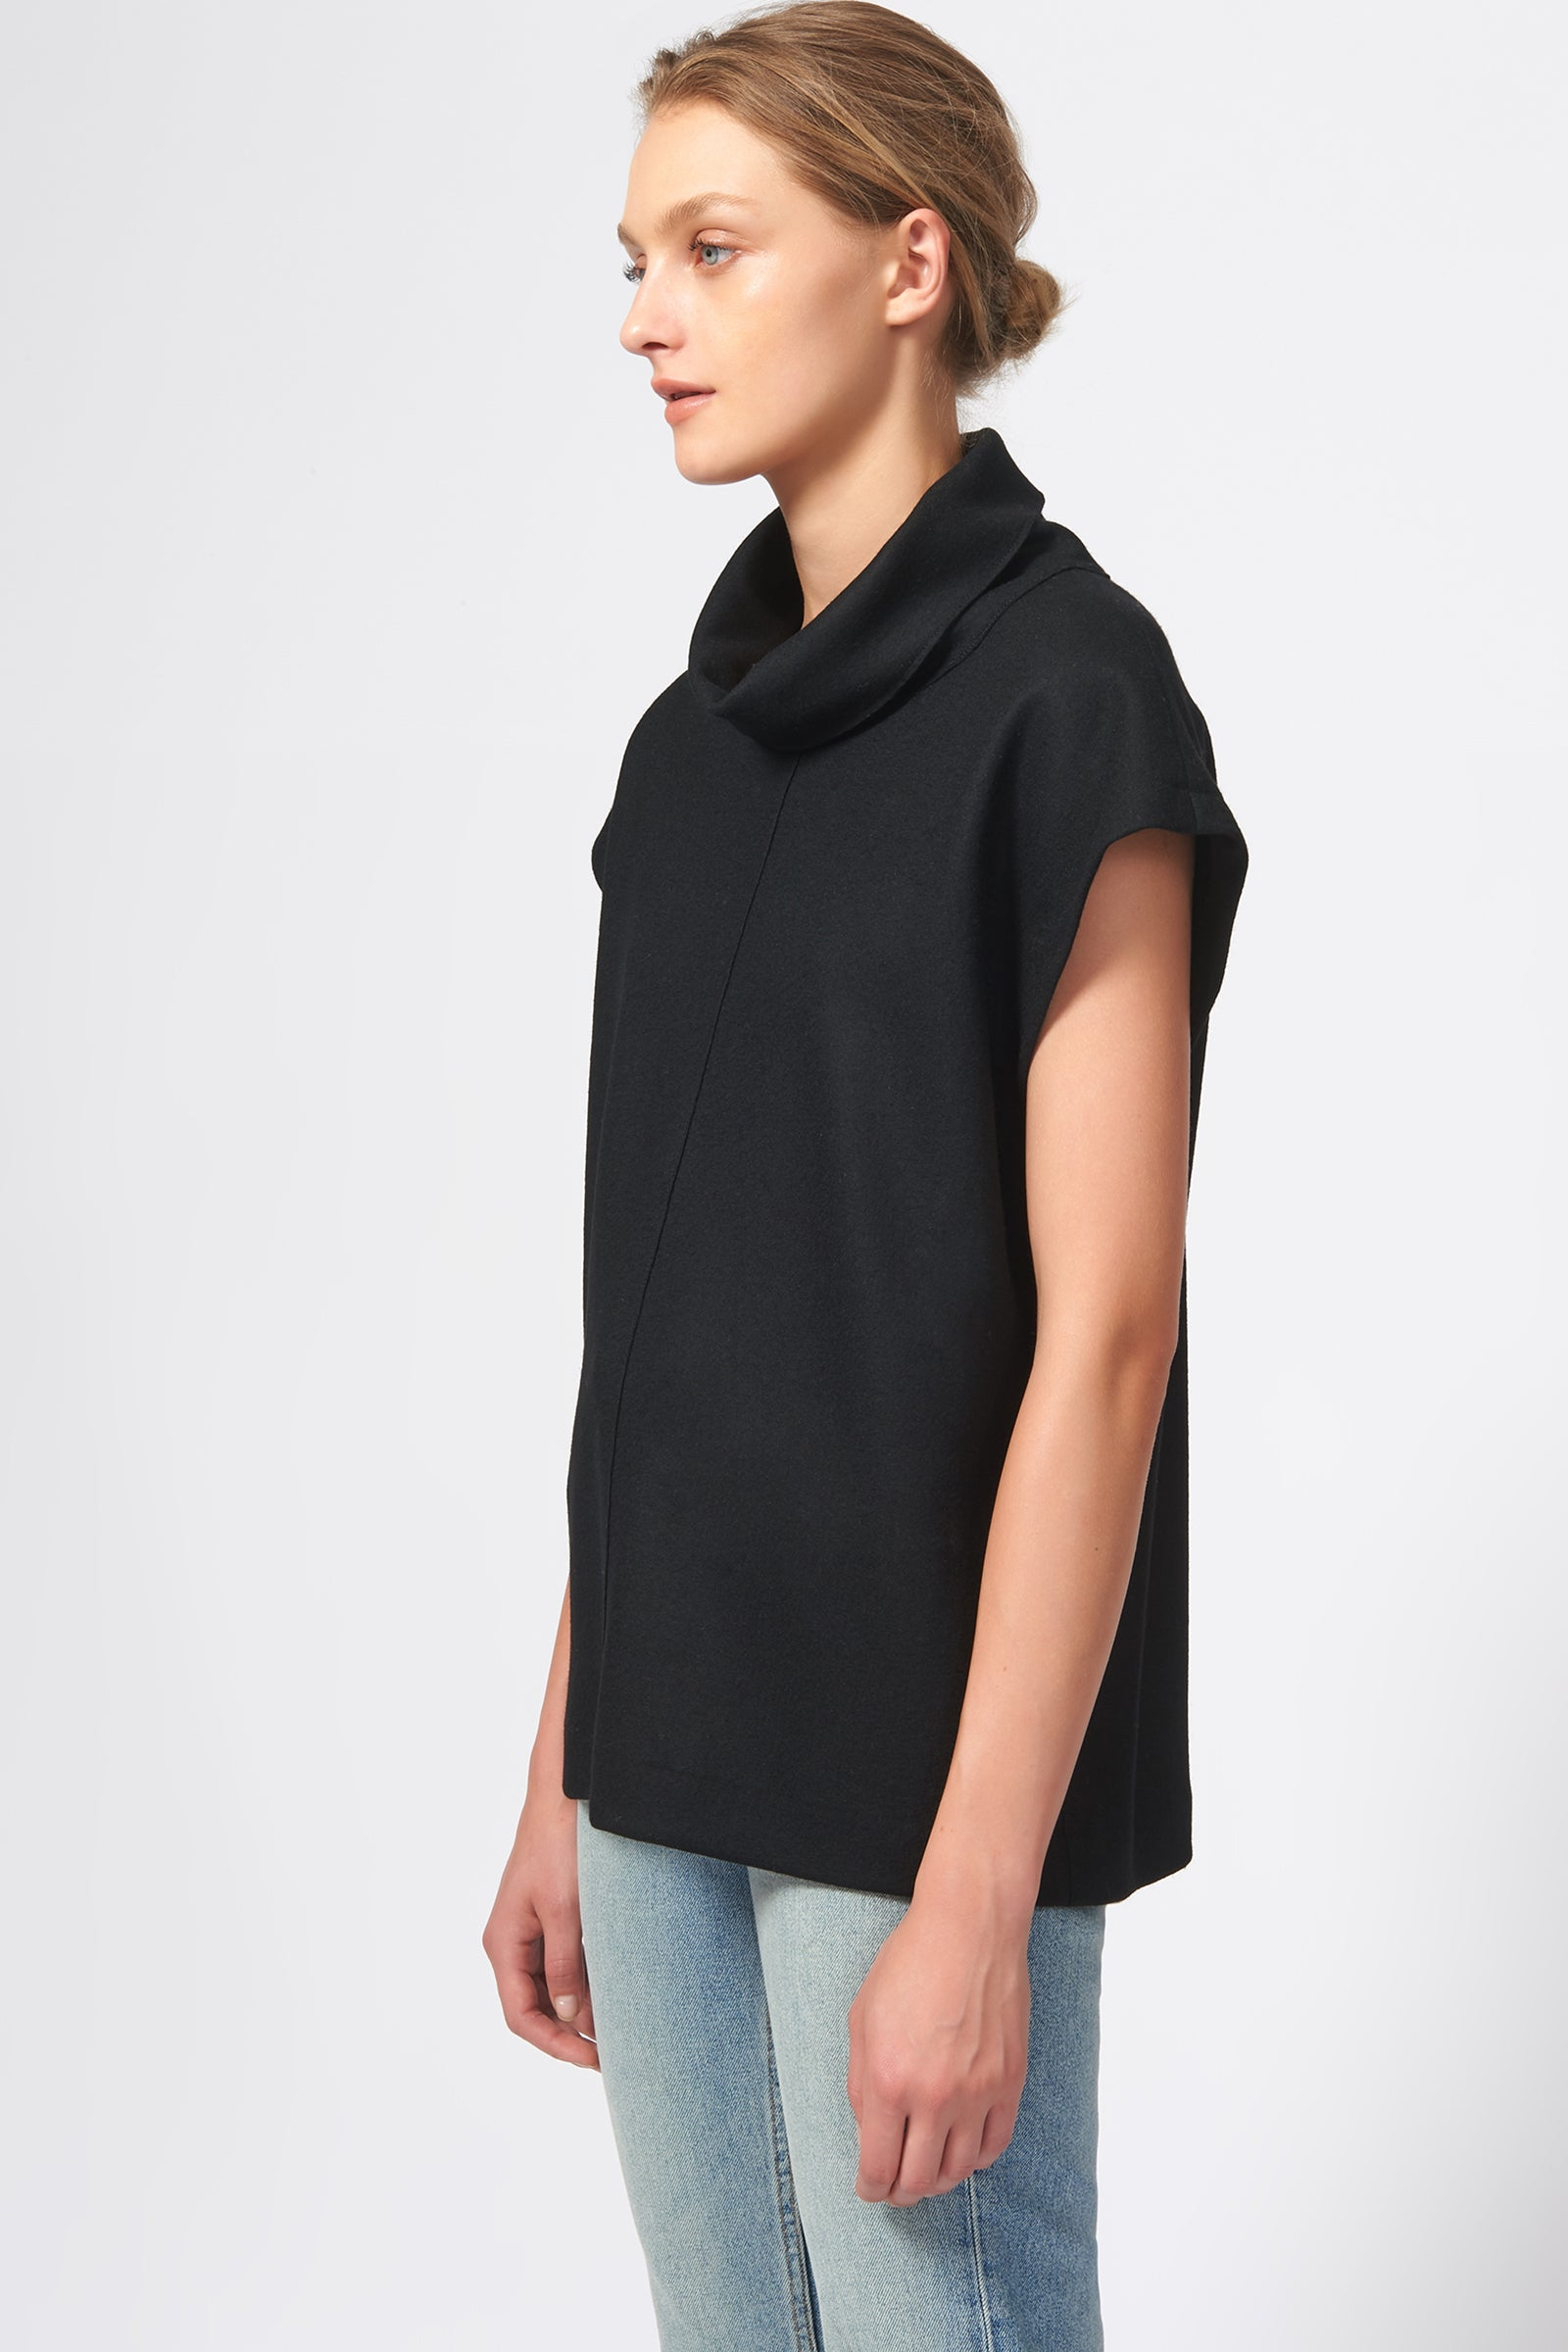 Kal Rieman Seamed Cap Sleeve Turtleneck in Black on Model Side View